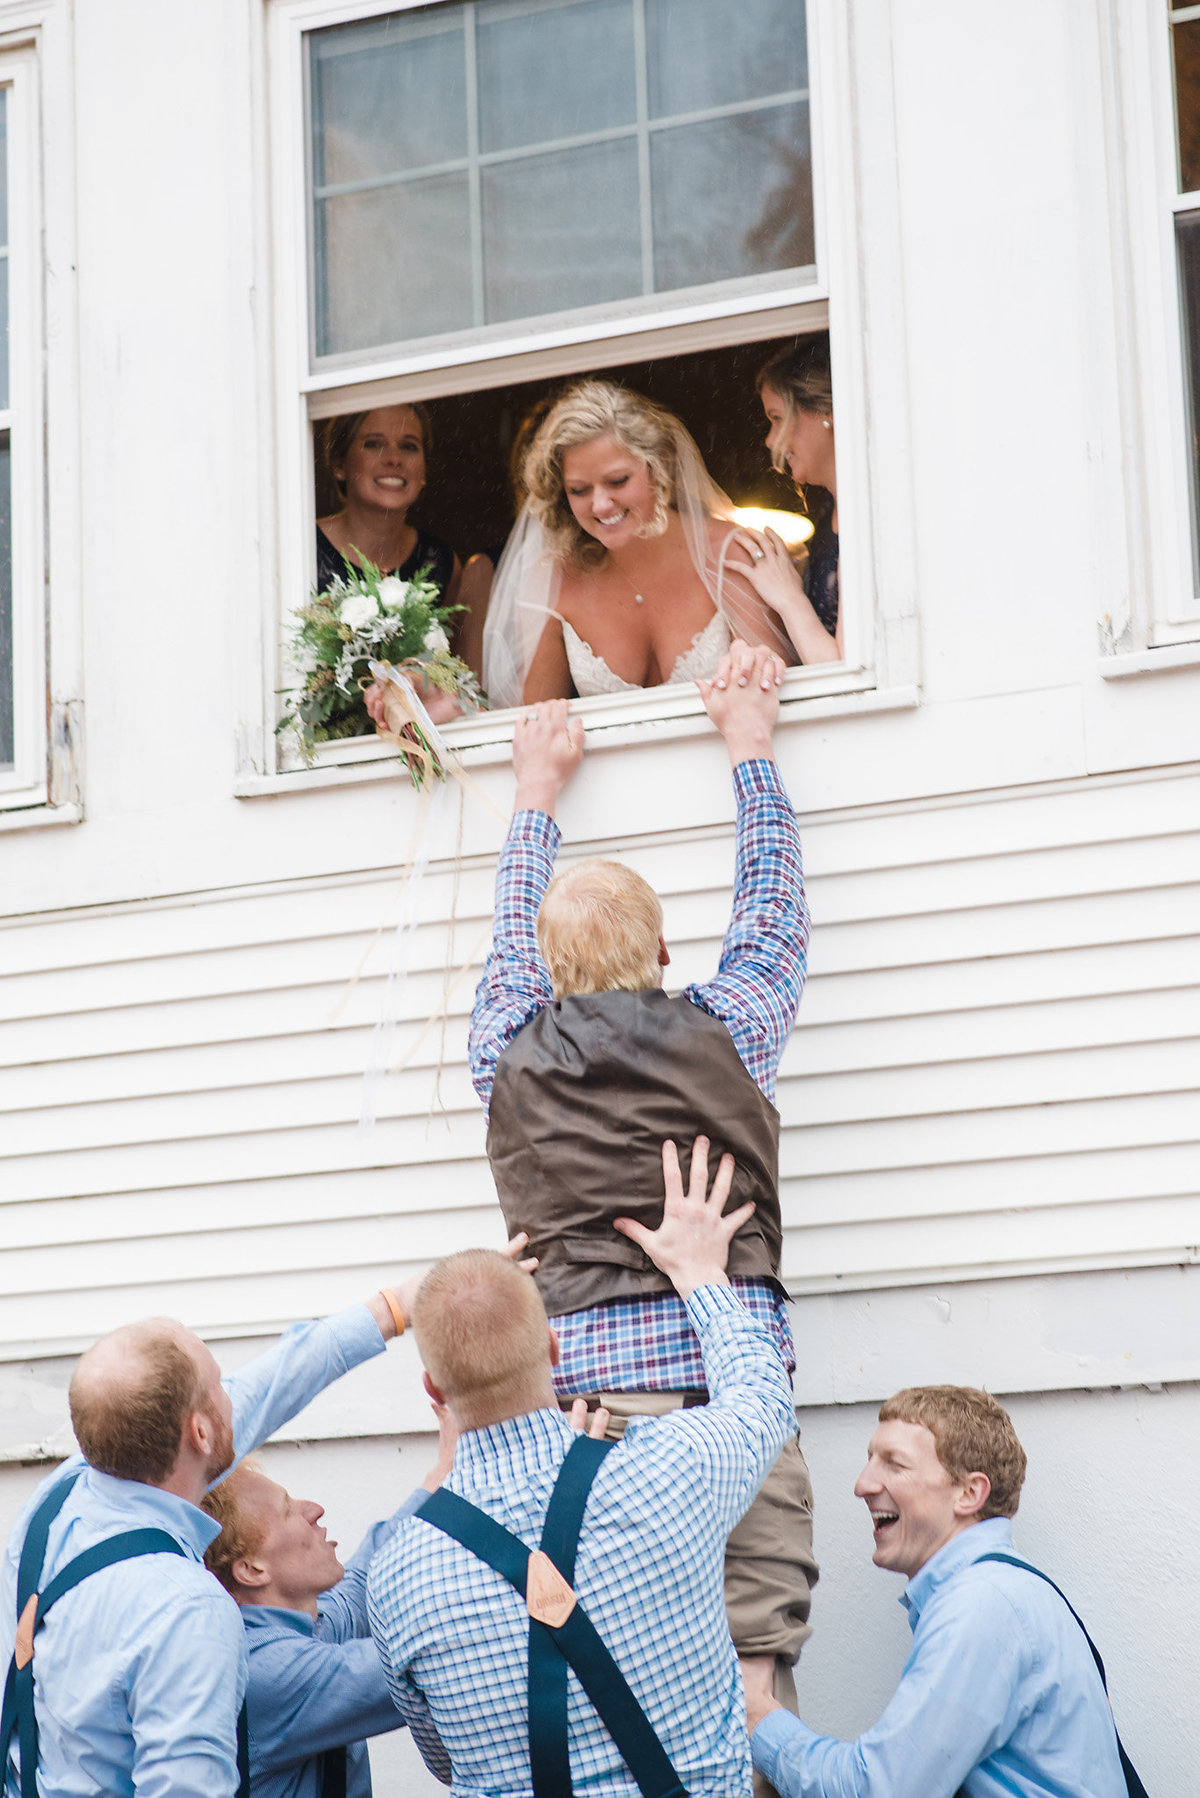 bride and groom in window, rainy wedding day